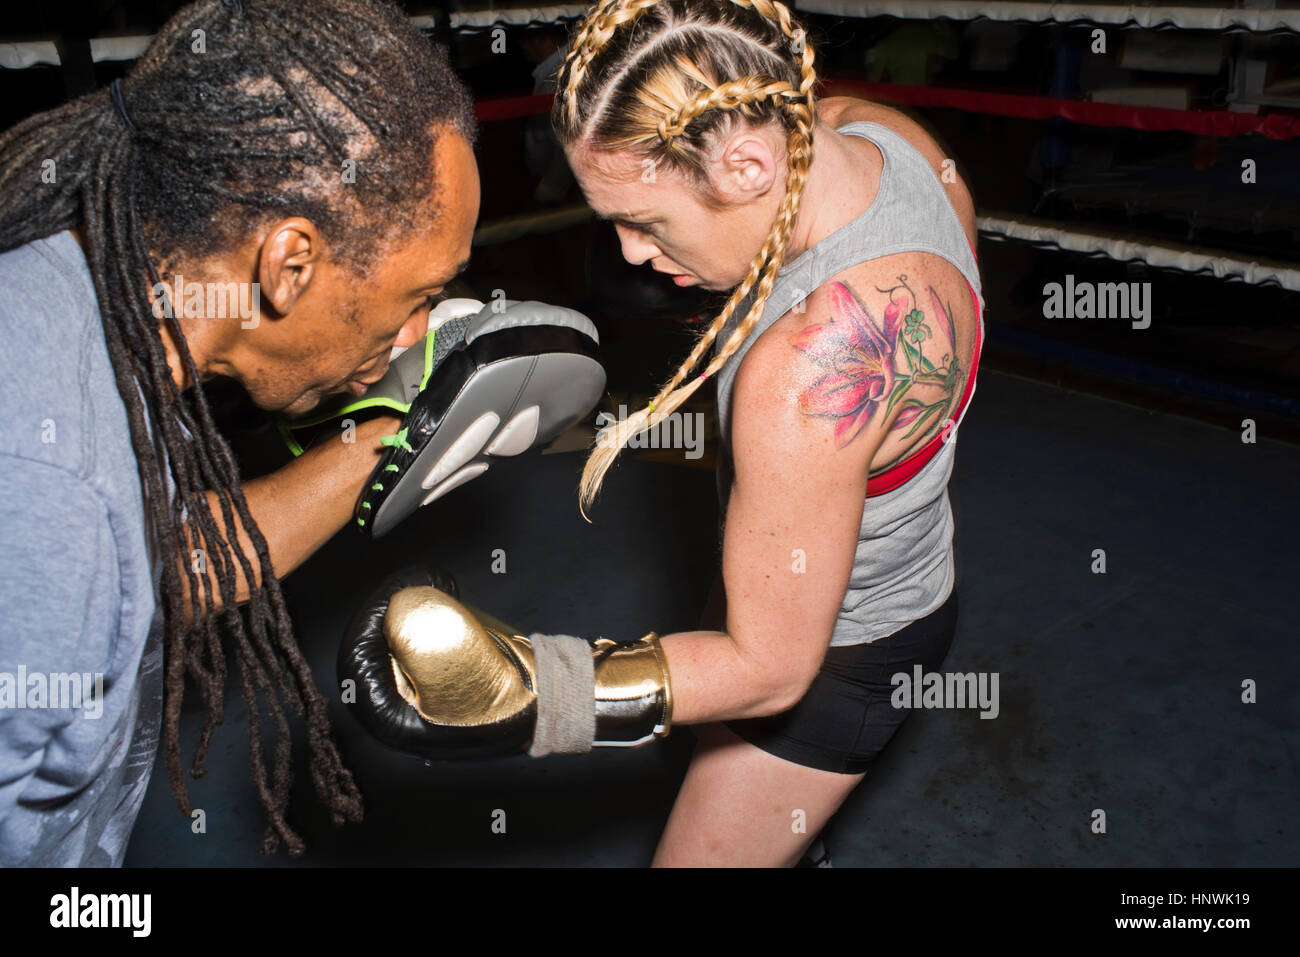 Female boxer punching trainer's boxing mitt in boxing ring - Stock Image